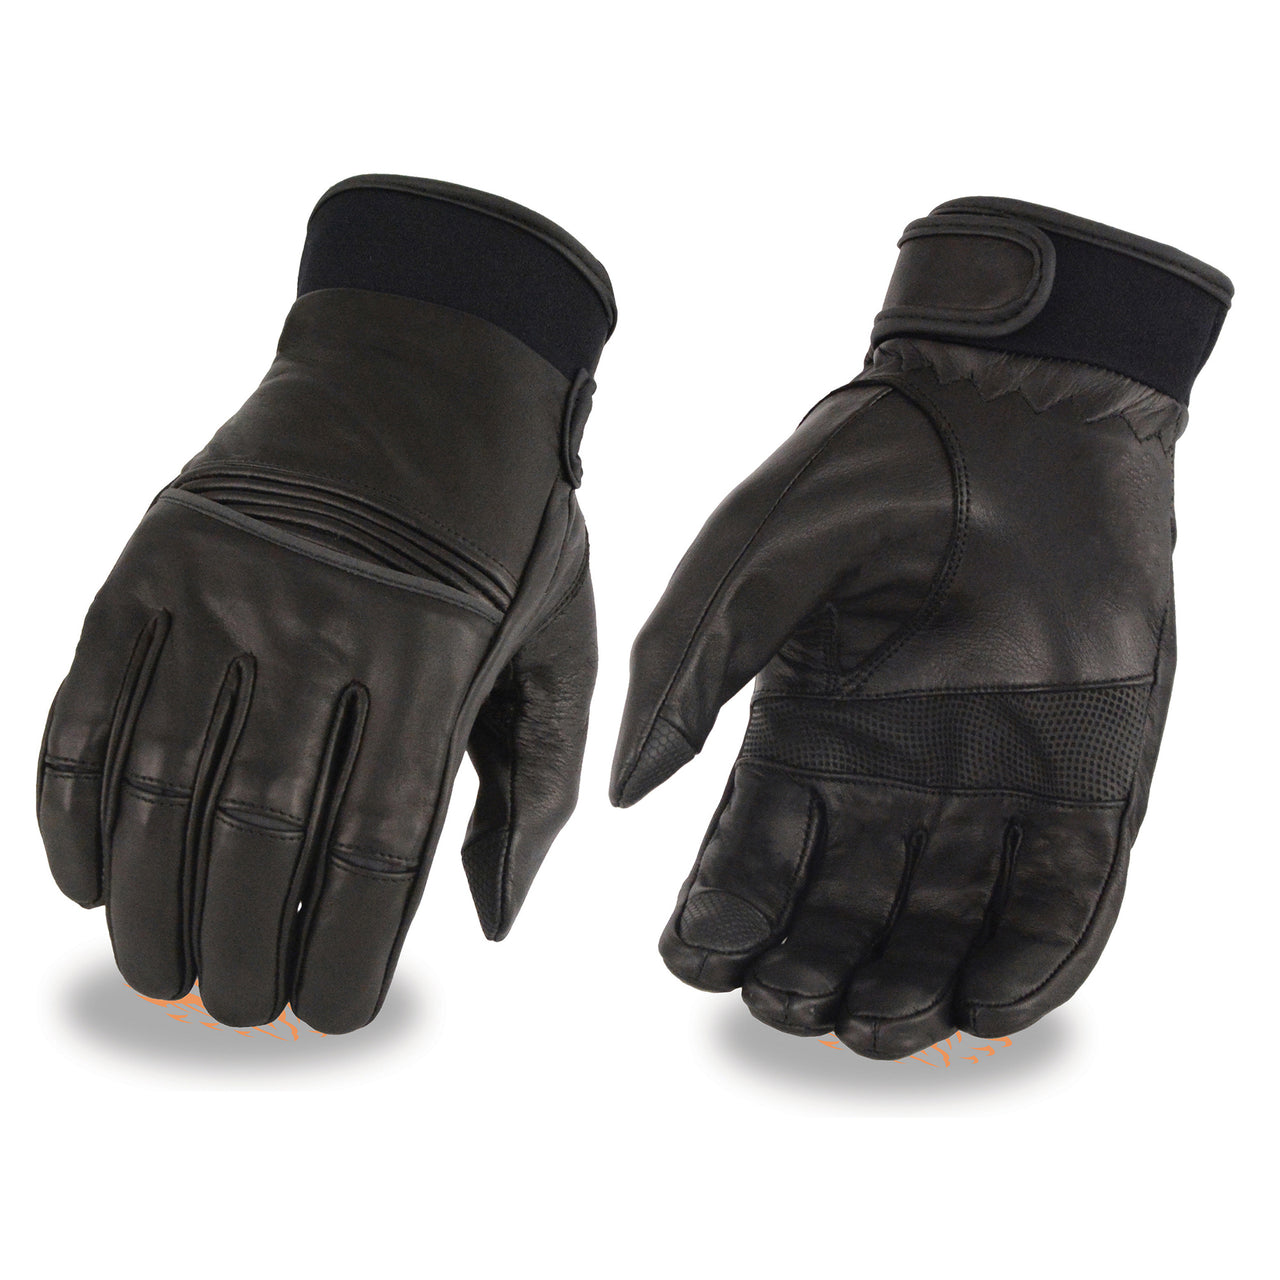 Men's Leather Riding Glove w/ Stretch Knuckles - I-Touch - HighwayLeather